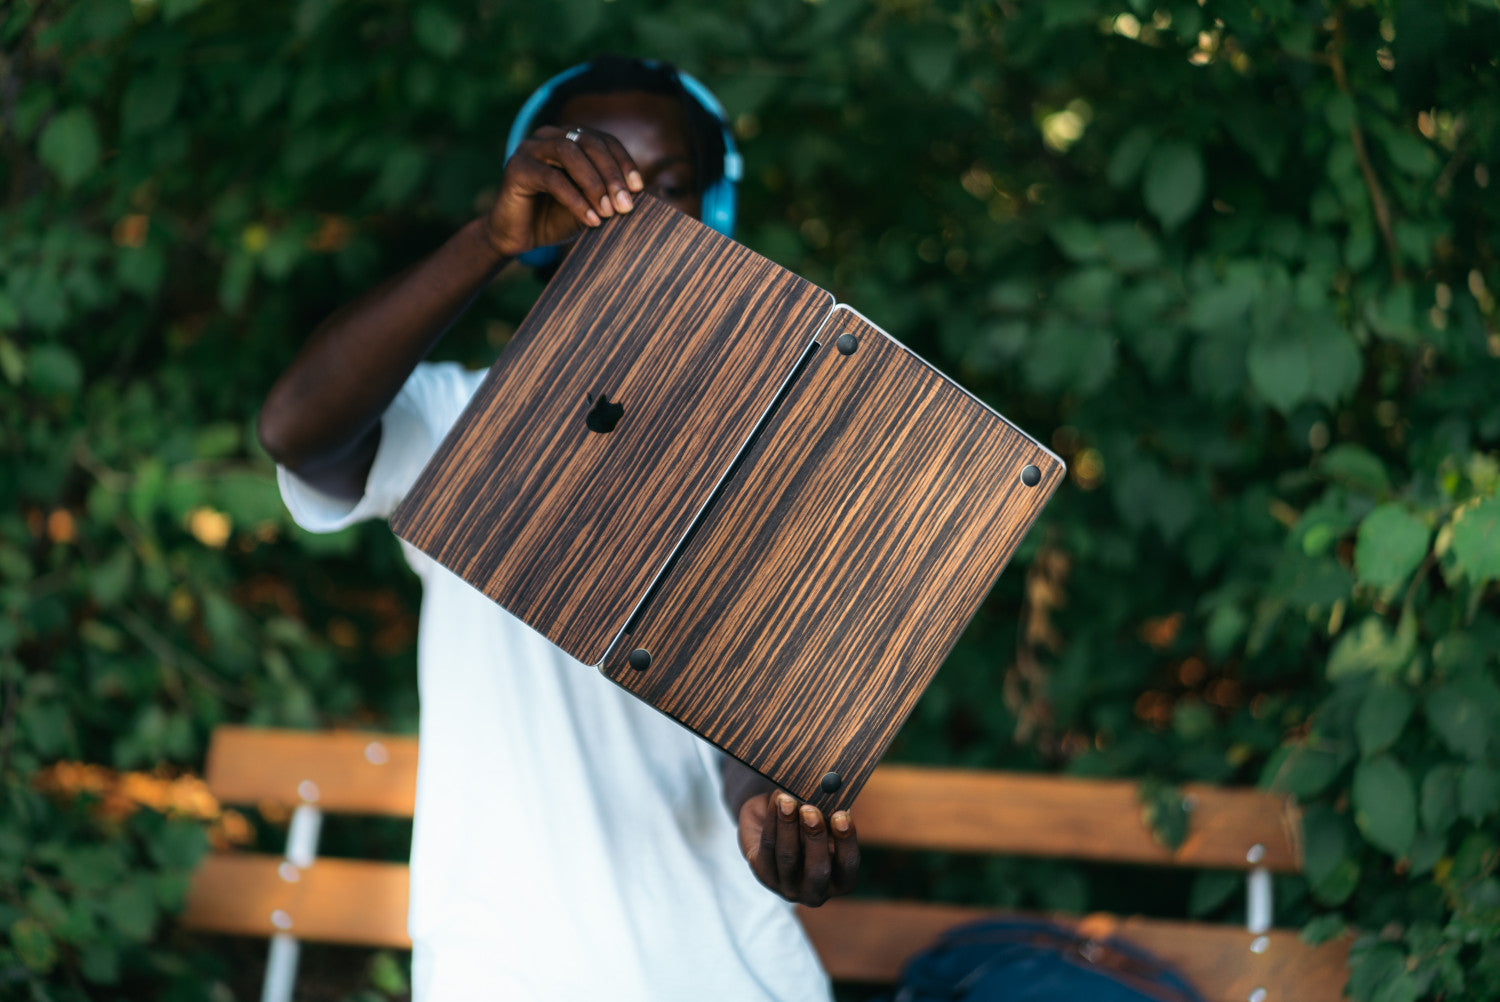 Cool guy with headphones on opening his MacBook Pro to show the top and bottom Glitty Ebony wood cover. He is standing outside in nature in a park.